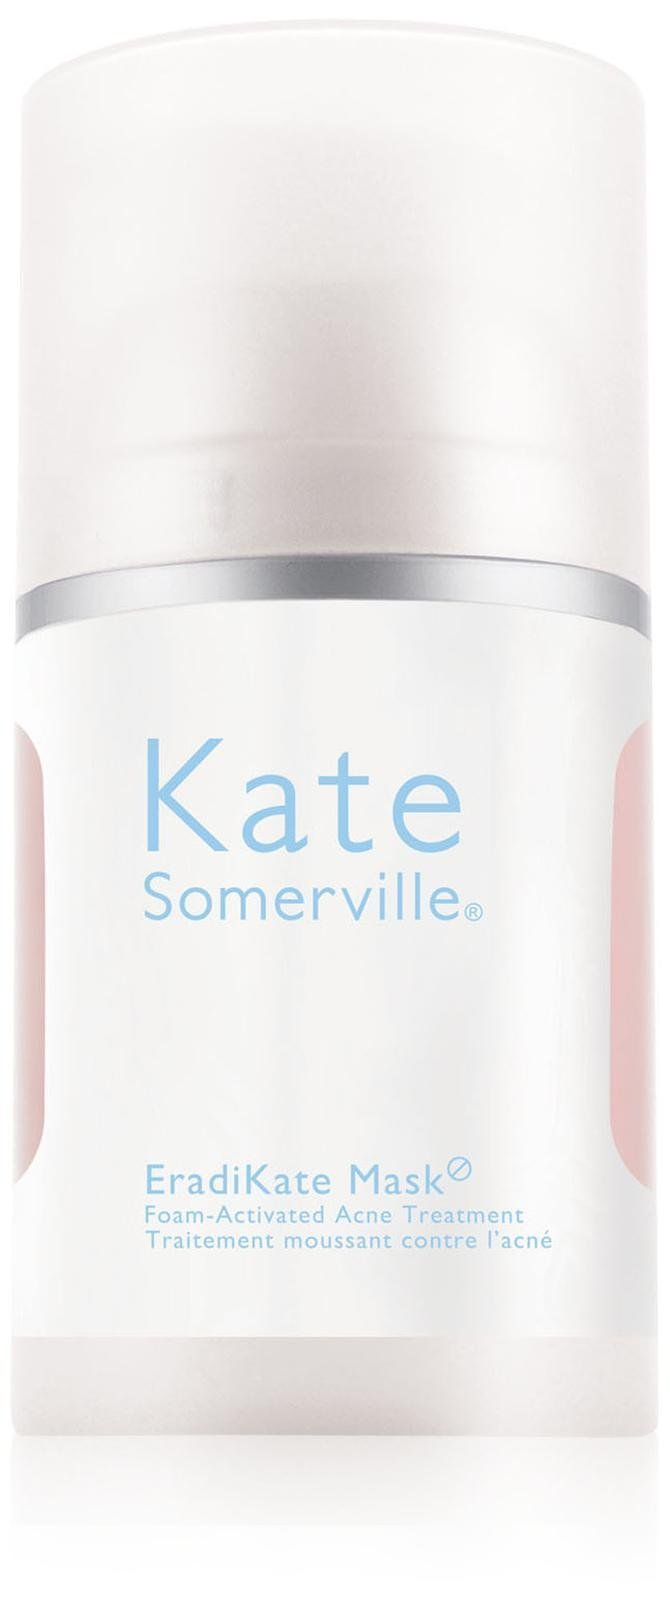 Kate Somerville EradiKate Mask Foam-Activated Acne Treatment - Sulfur Mask for Acne (2 Fl. Oz.)